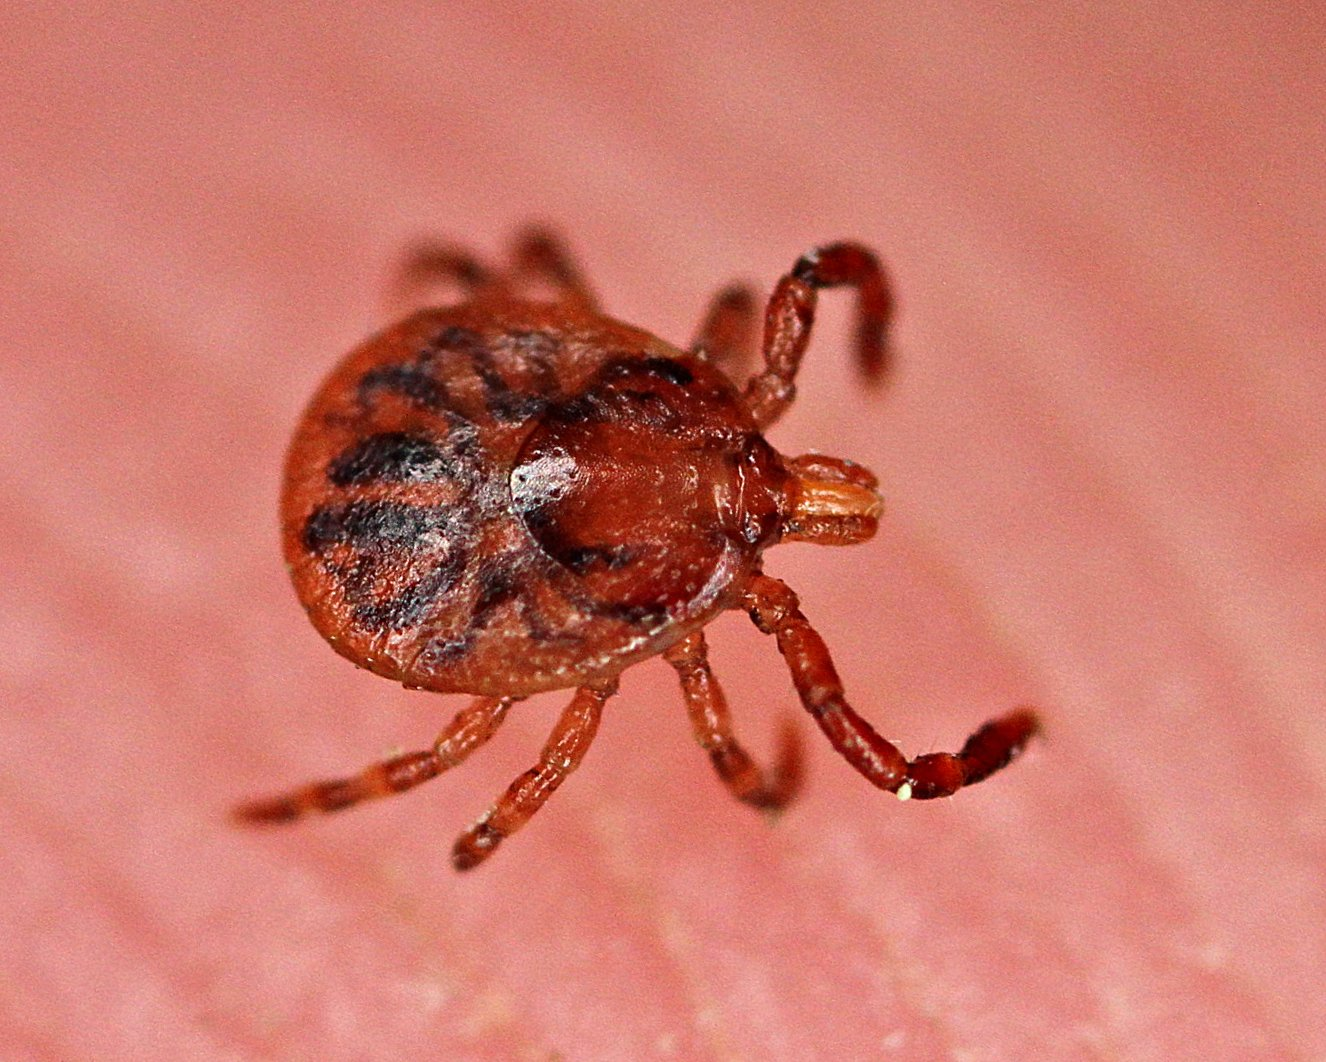 pictures of ticks - 800×641